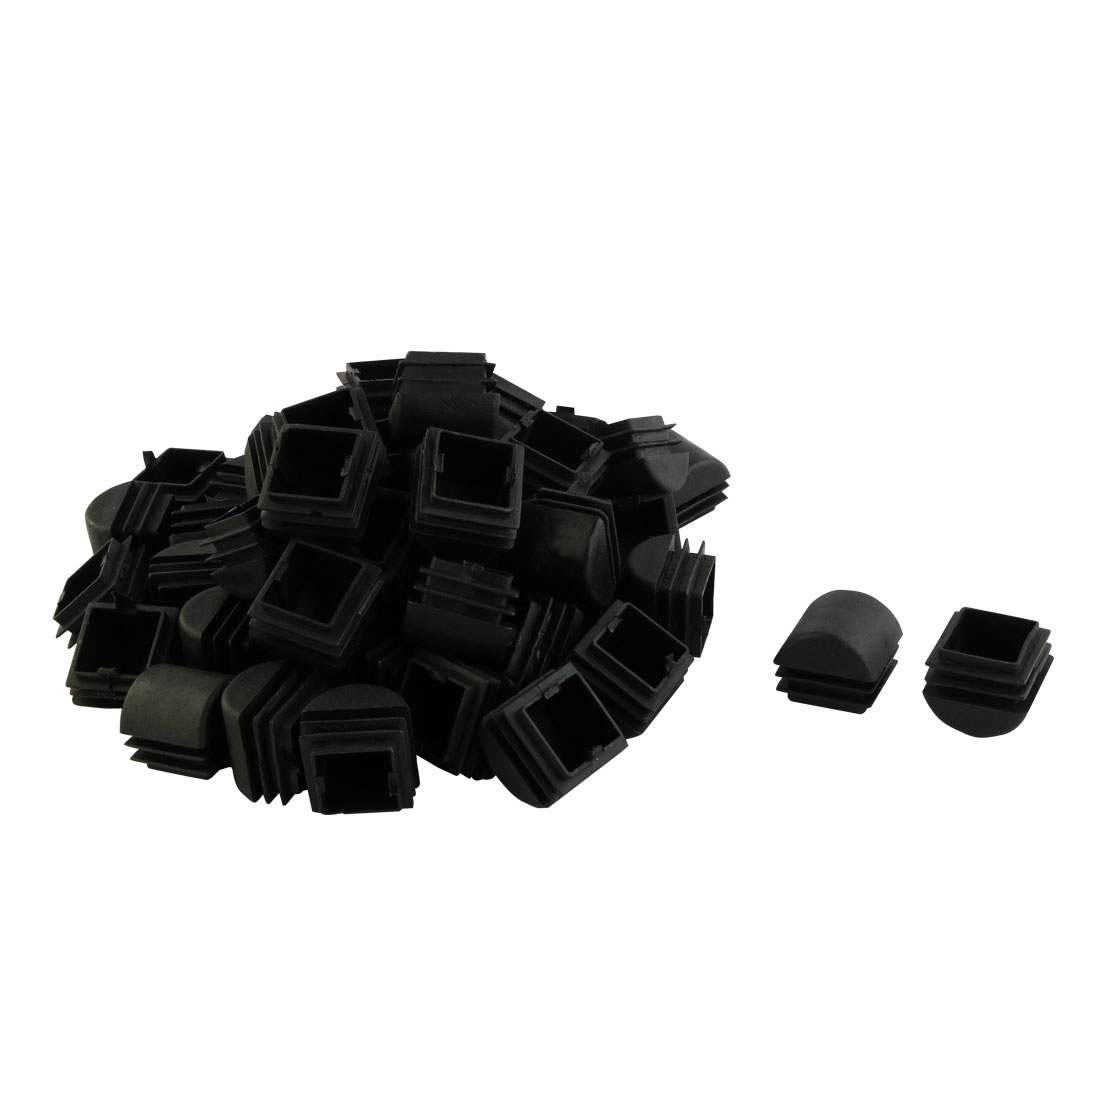 Plastic Square Design Tube Insert End Blanking Cover Cap Black 25 x 25mm 50pcs